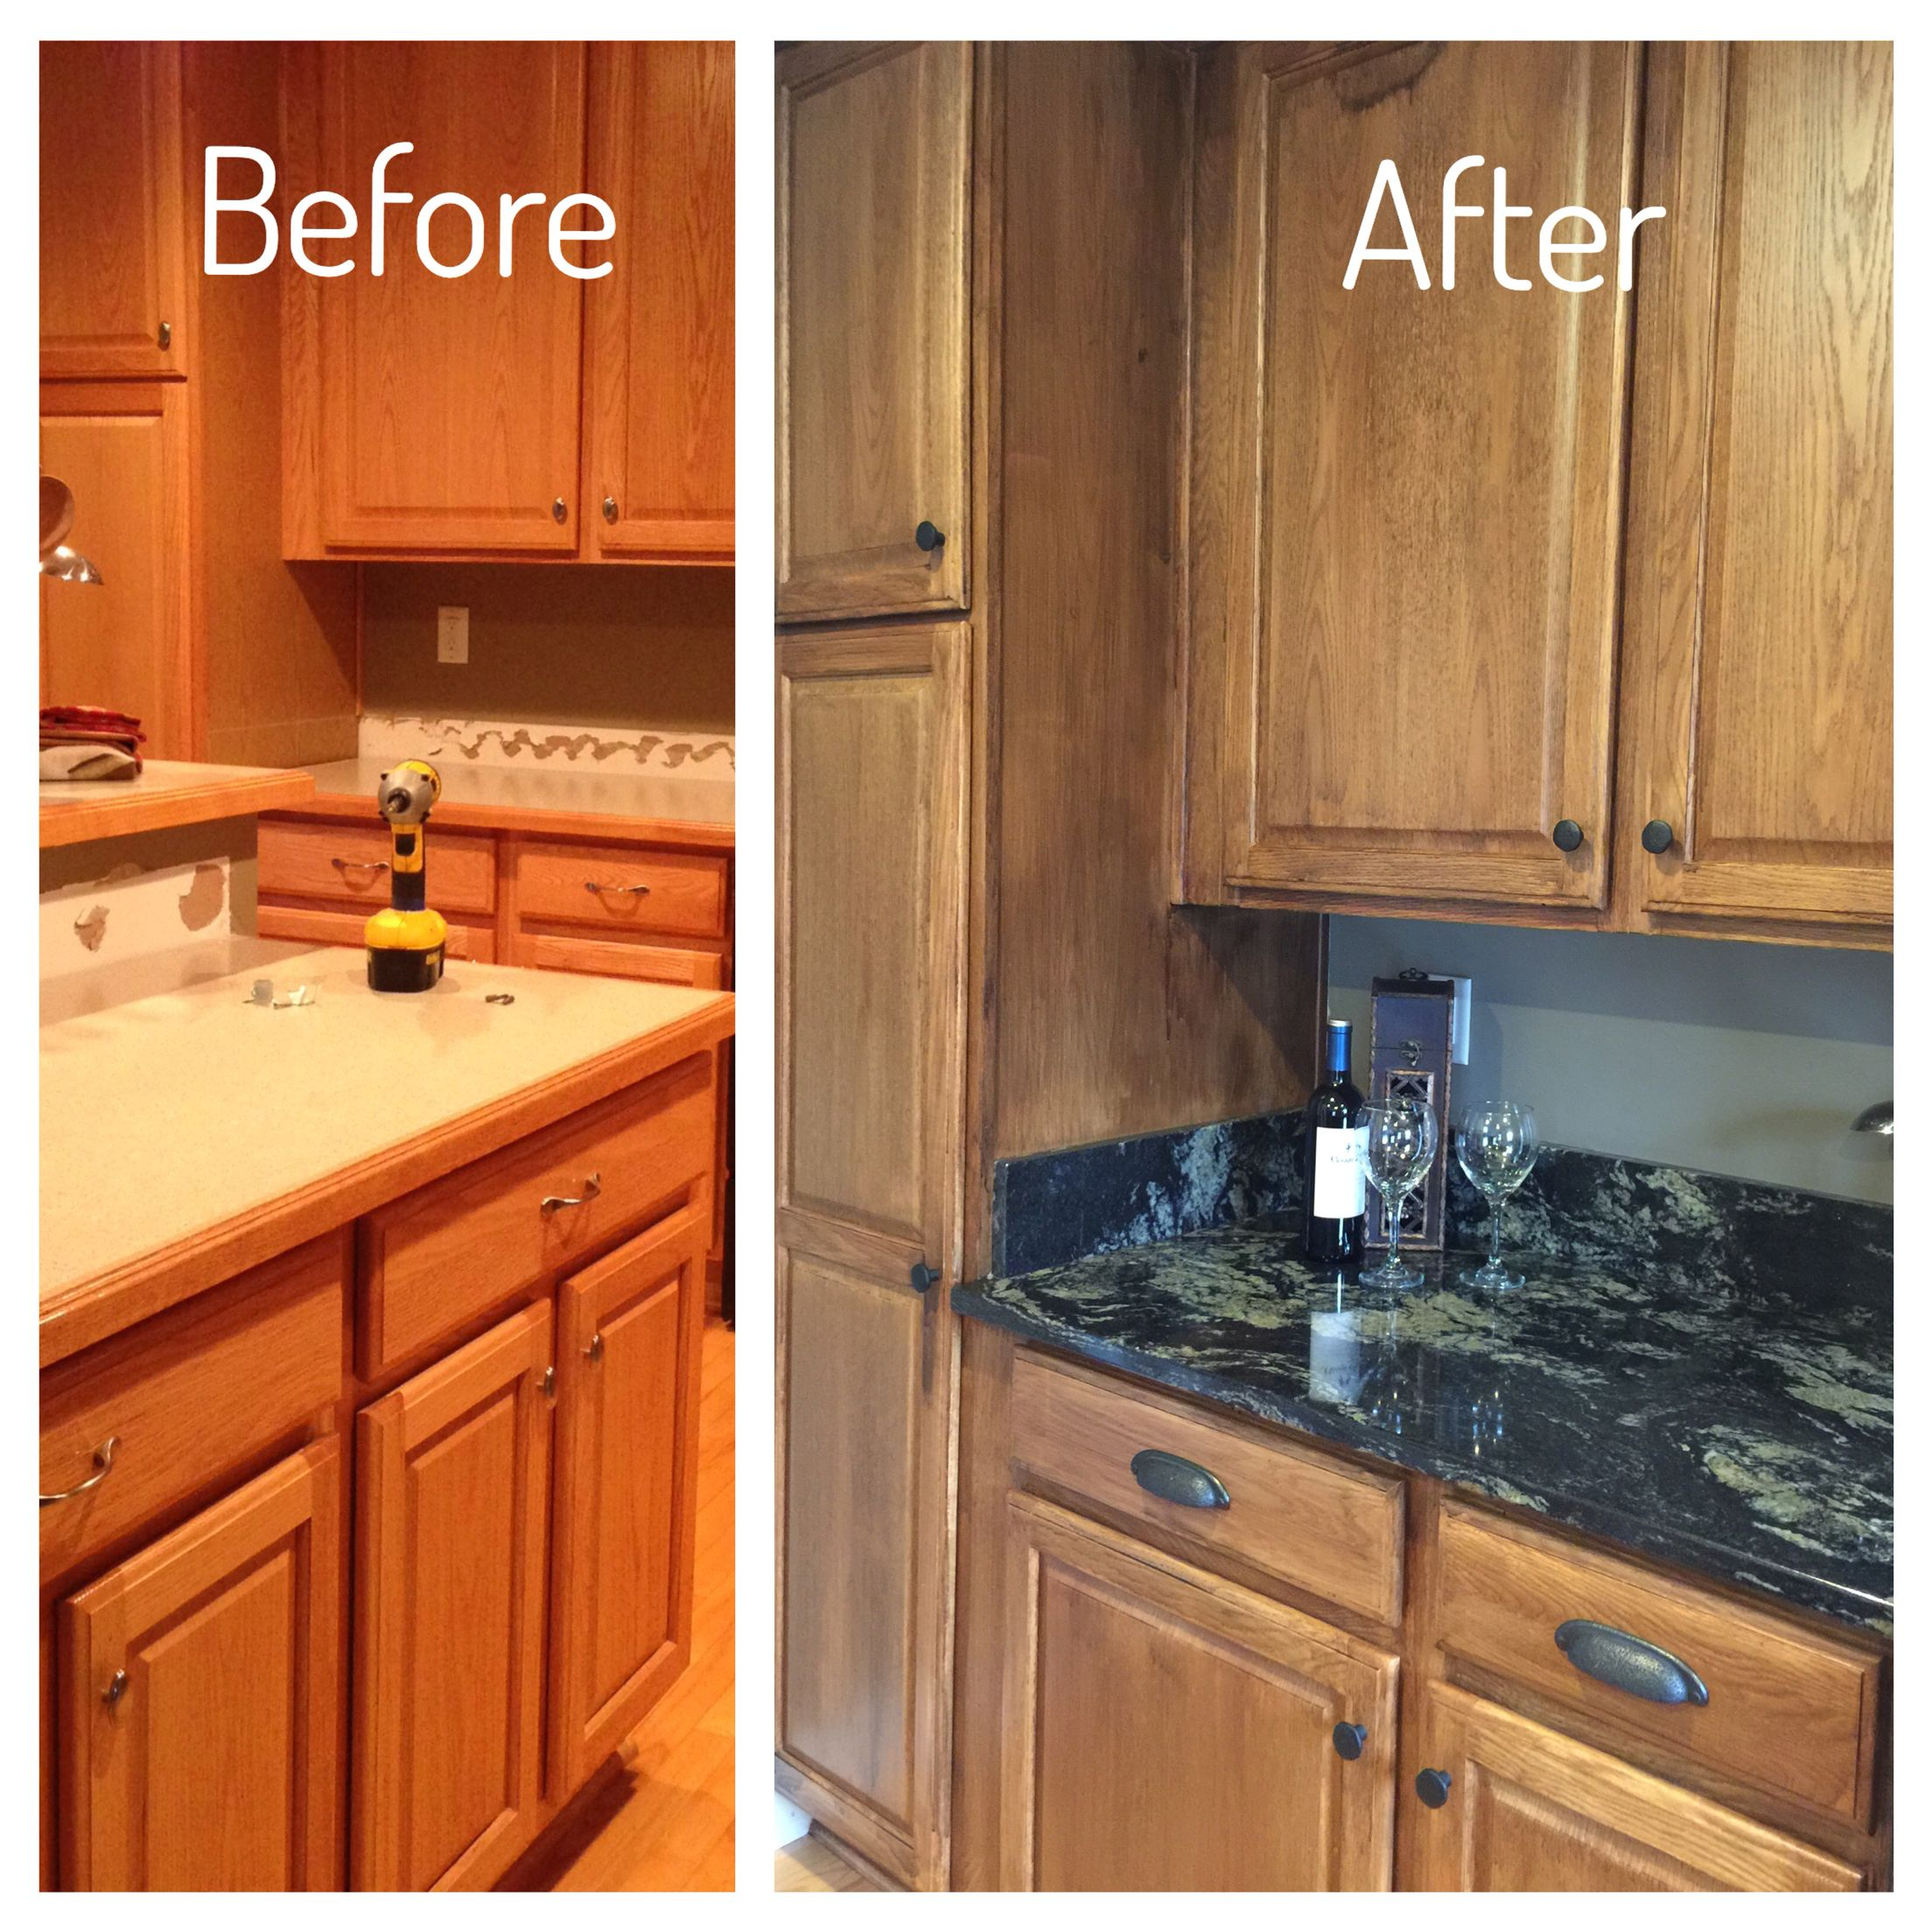 Kitchen Cabinet Makeover Ideas Paint: Kitchen Cabinet Makeover. 2 Coats Of Minwax PolyShade